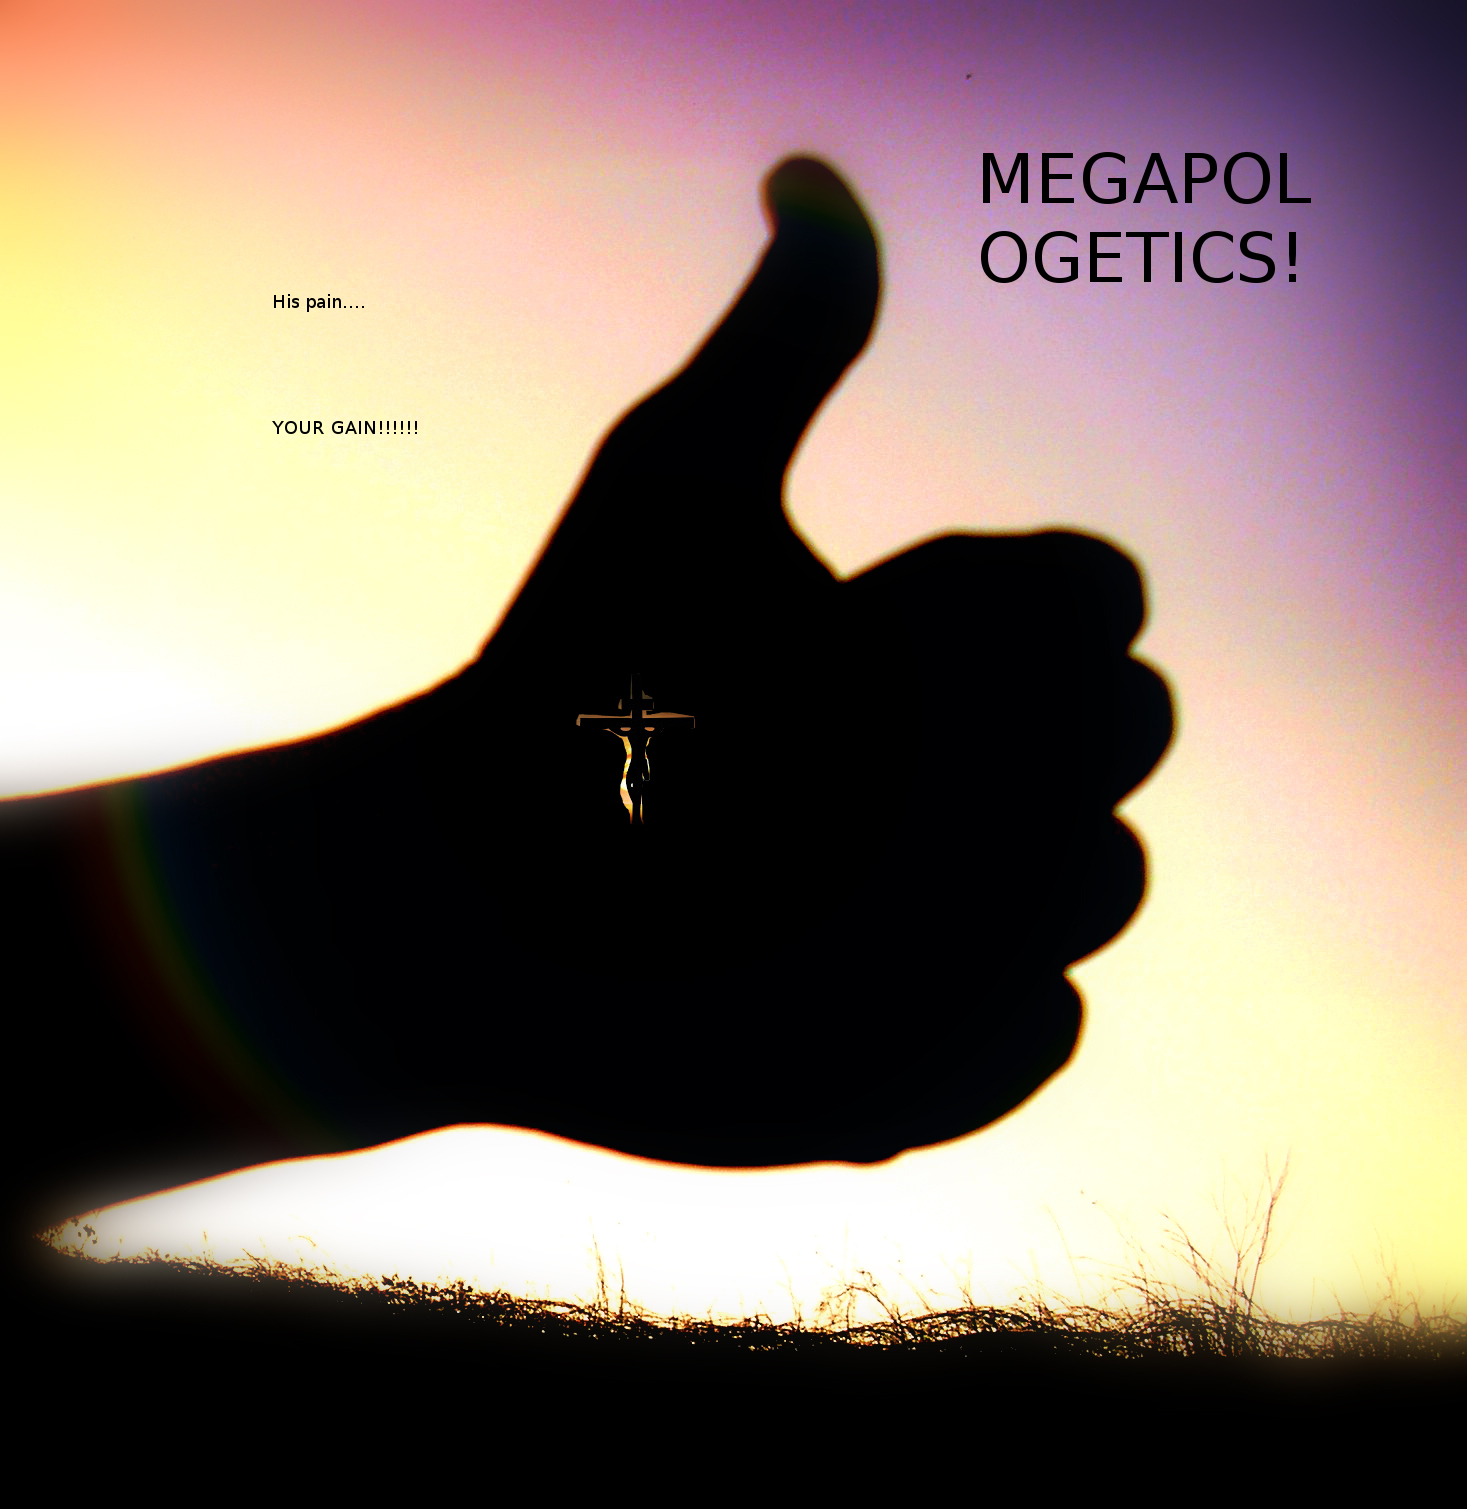 Megapologetics!